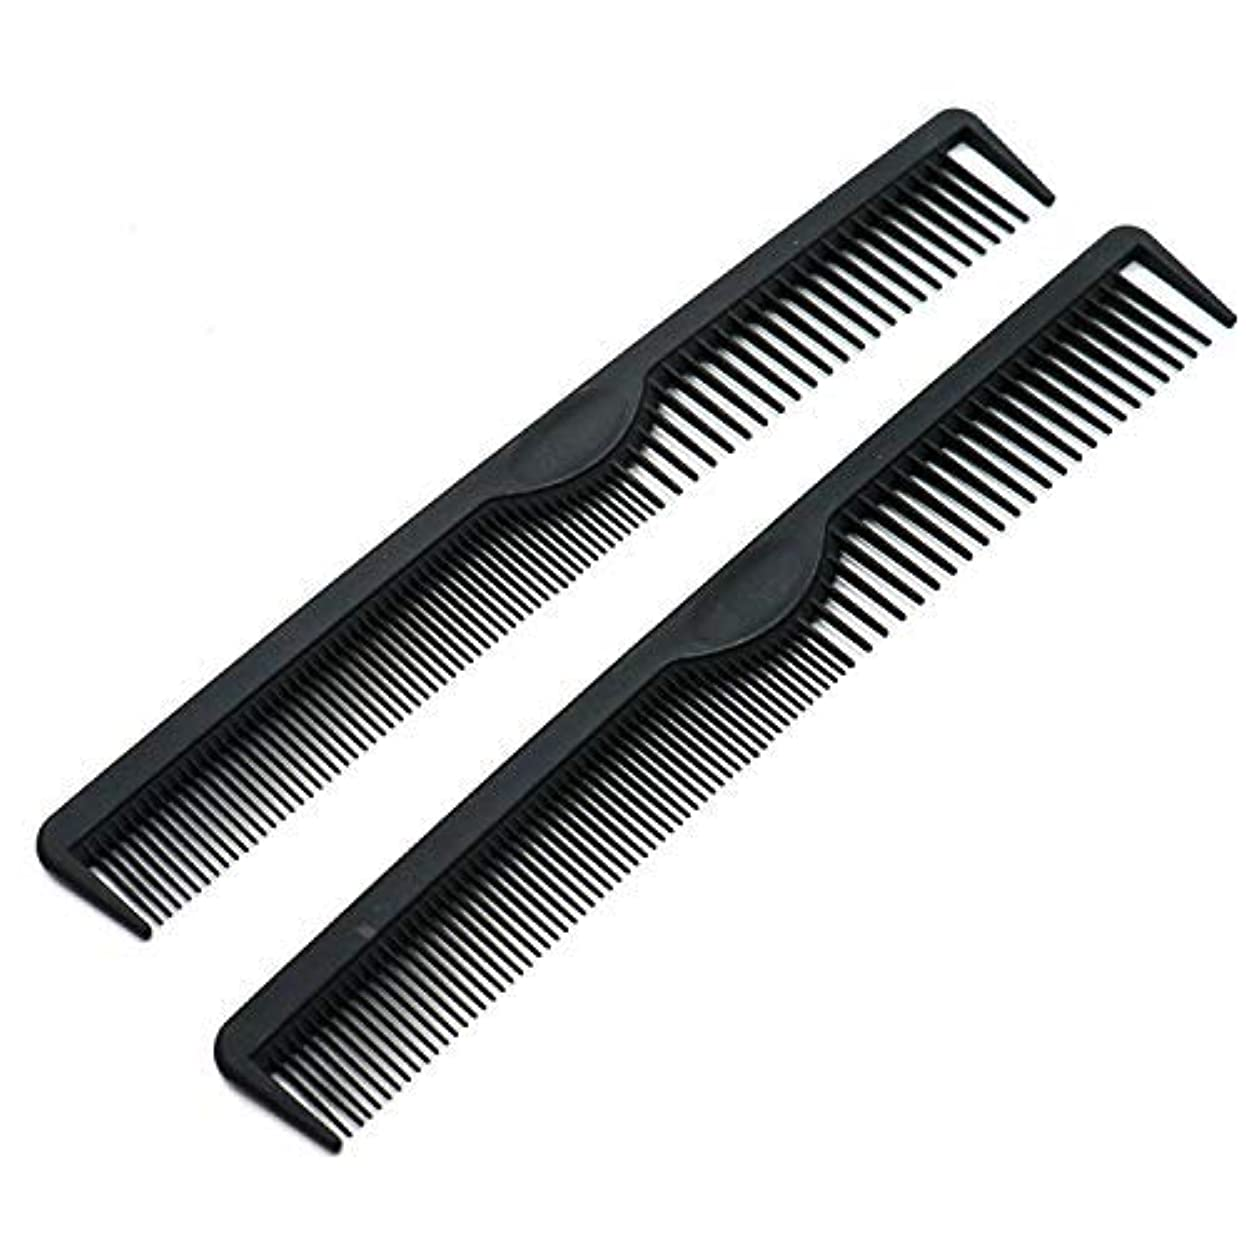 きつく公平悪性IDS Combs 2 PCS Black Carbon Fiber Hair Combs with Fine Cutting Comb for Women and Man [並行輸入品]